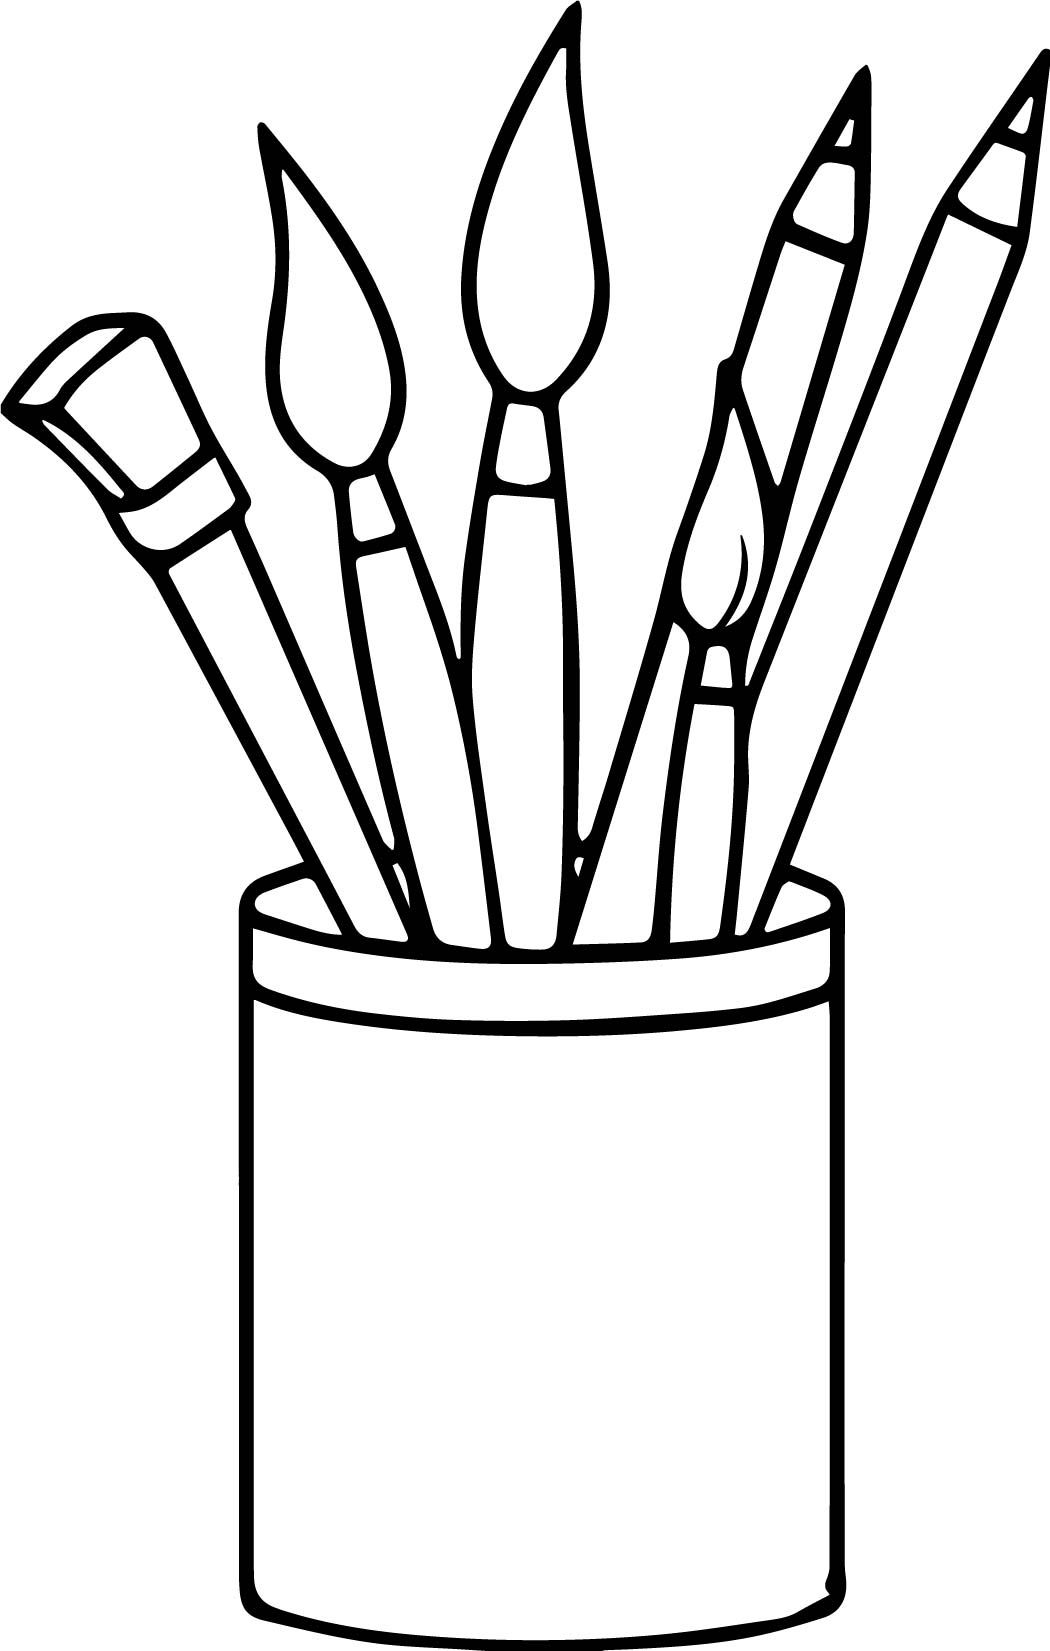 Nice Art Supplies Pencils Paint Brushes Coloring Page